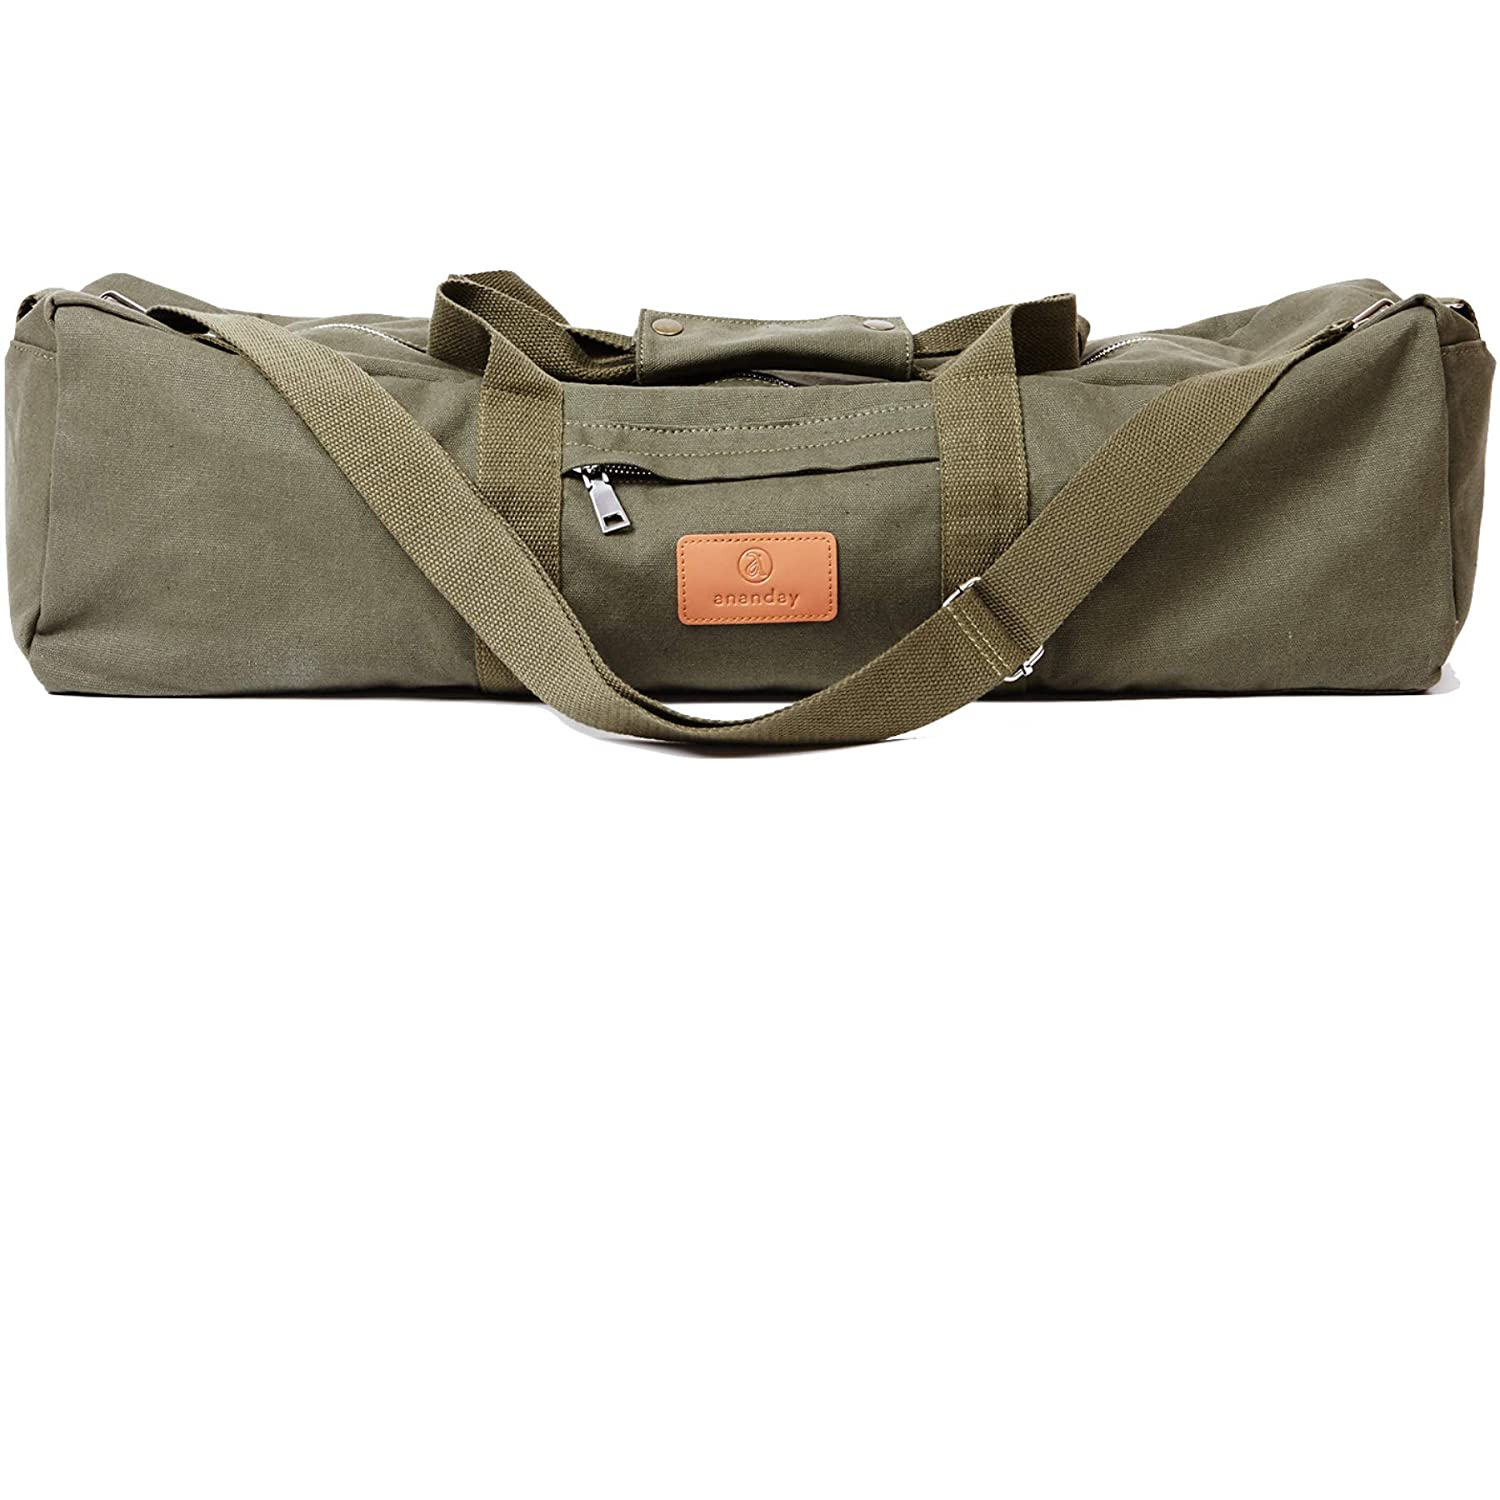 Ananday Extra Large Yoga Mat Duffel Bag with Pockets and Zipper | Natural Cotton Canvas | Adjustable Shoulder Strap | Fits Most Size Mats | Eco-Friendly